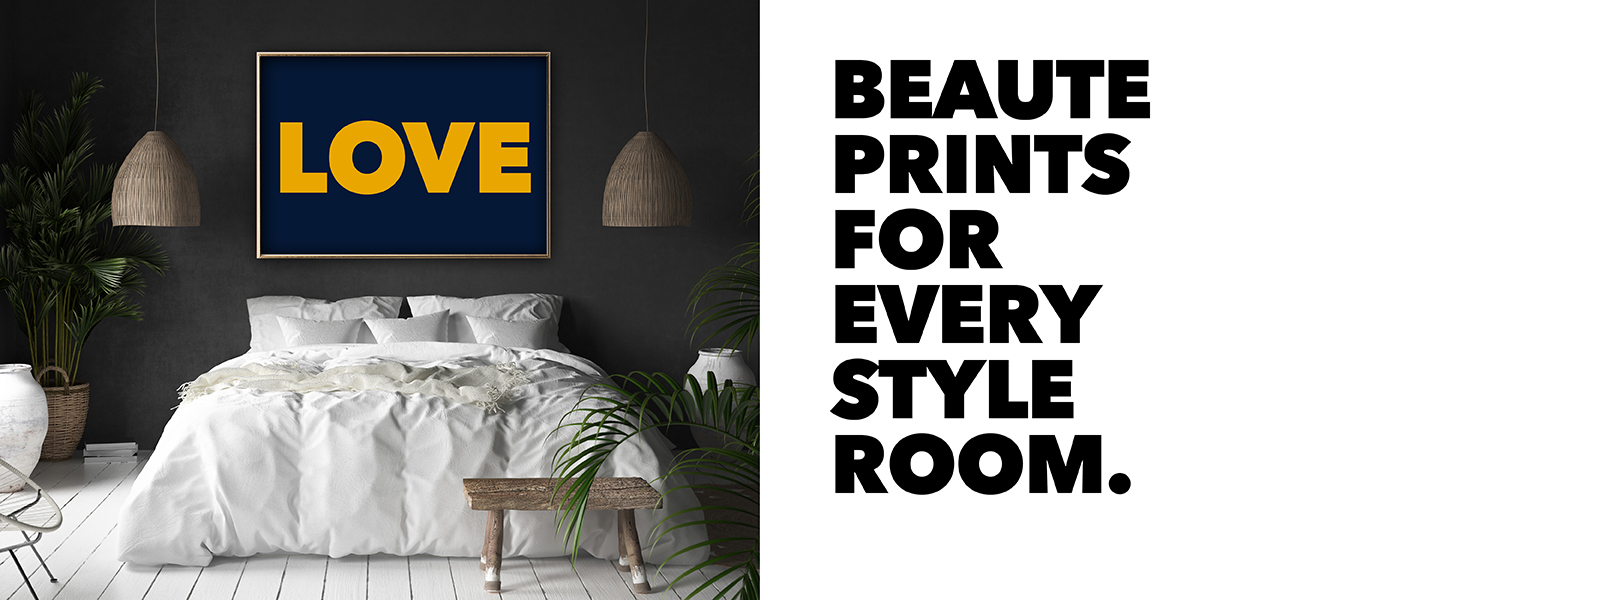 LOVE Beaut prints for every style room. Typography art prints from gallery wall warriors